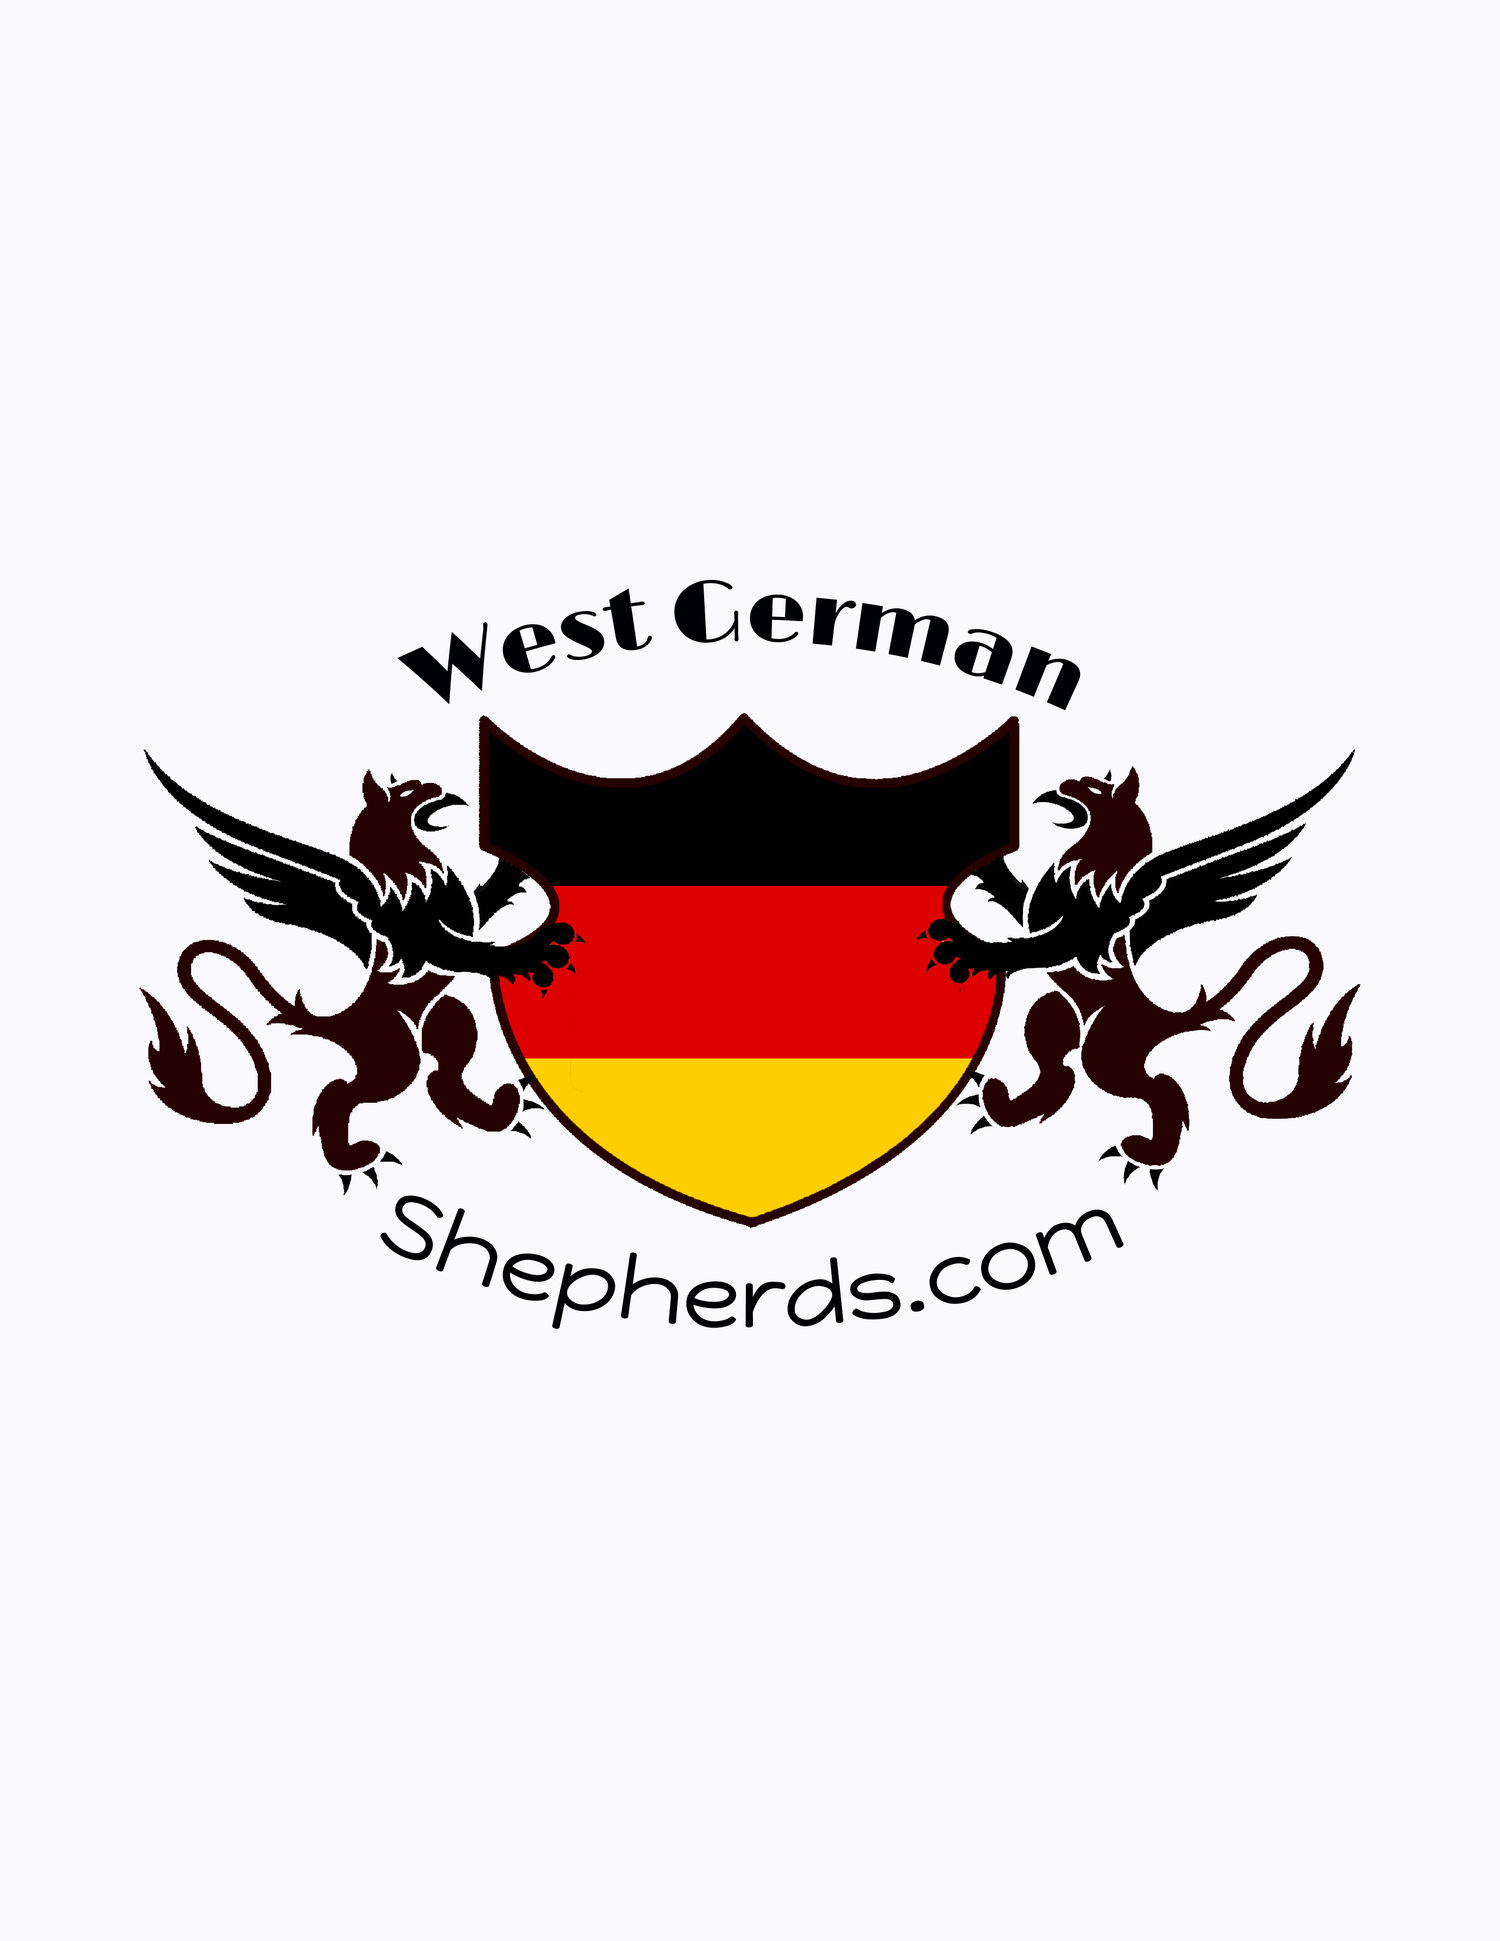 West German Shepherds